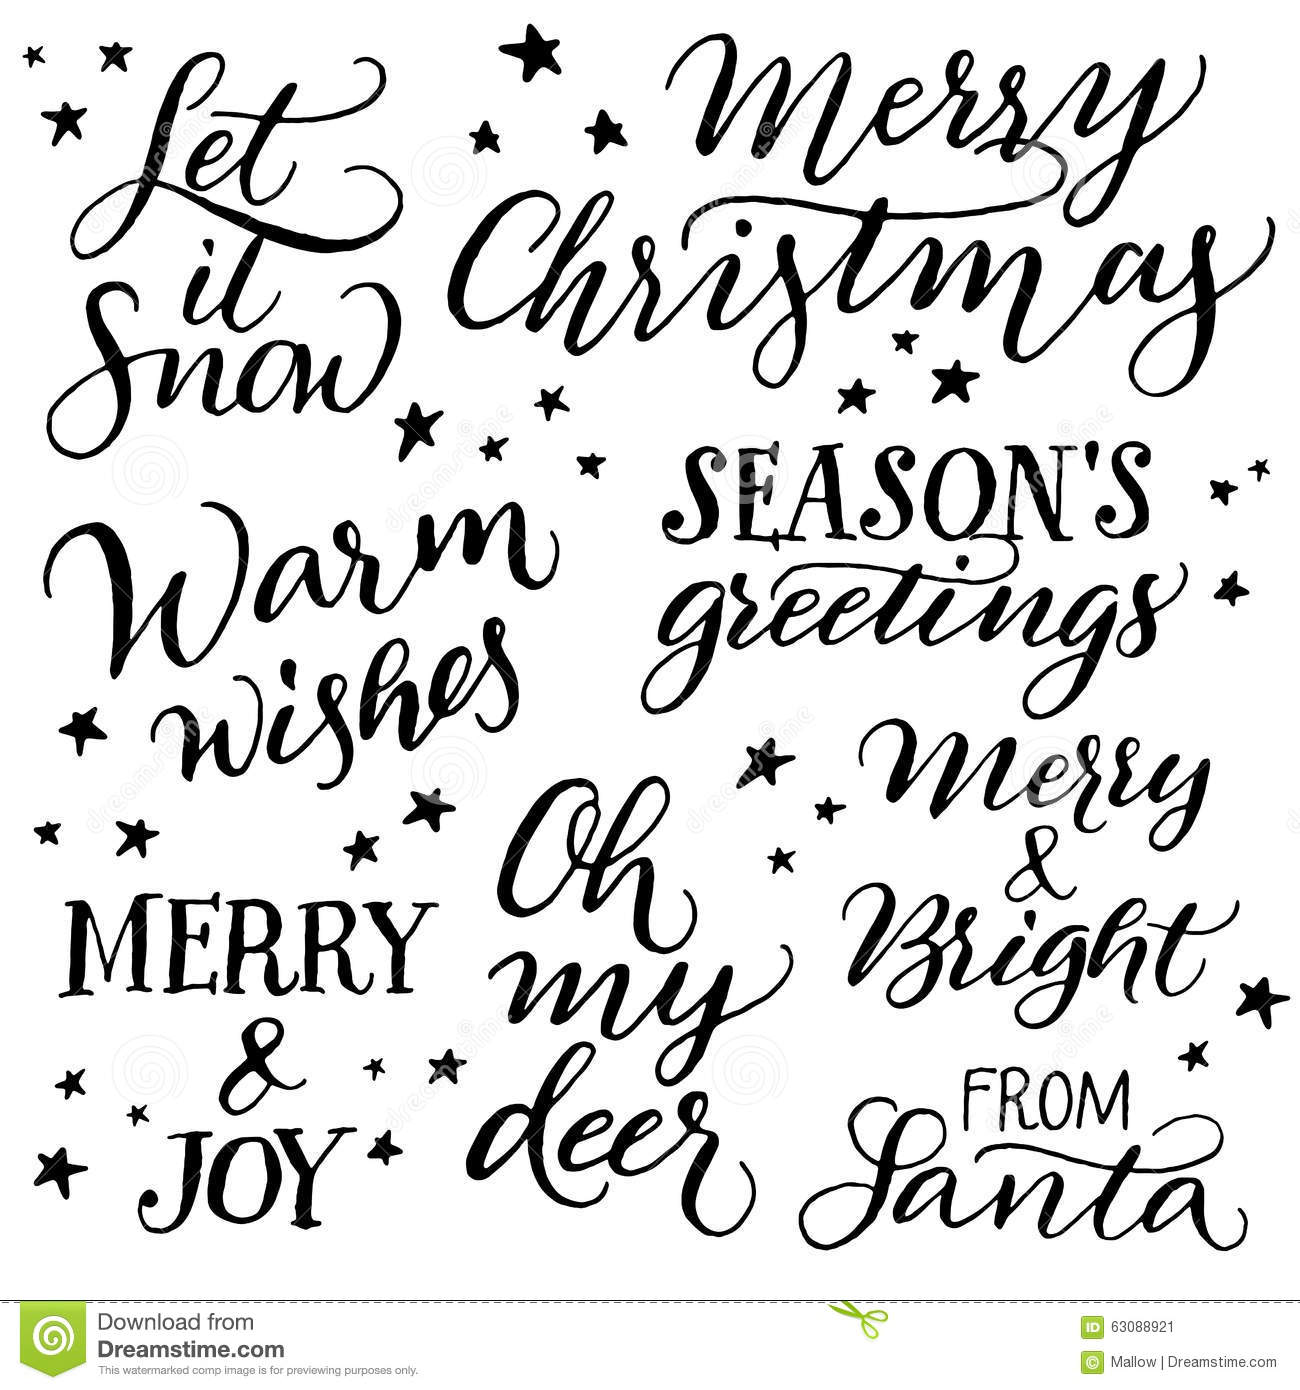 xmas wishes and images